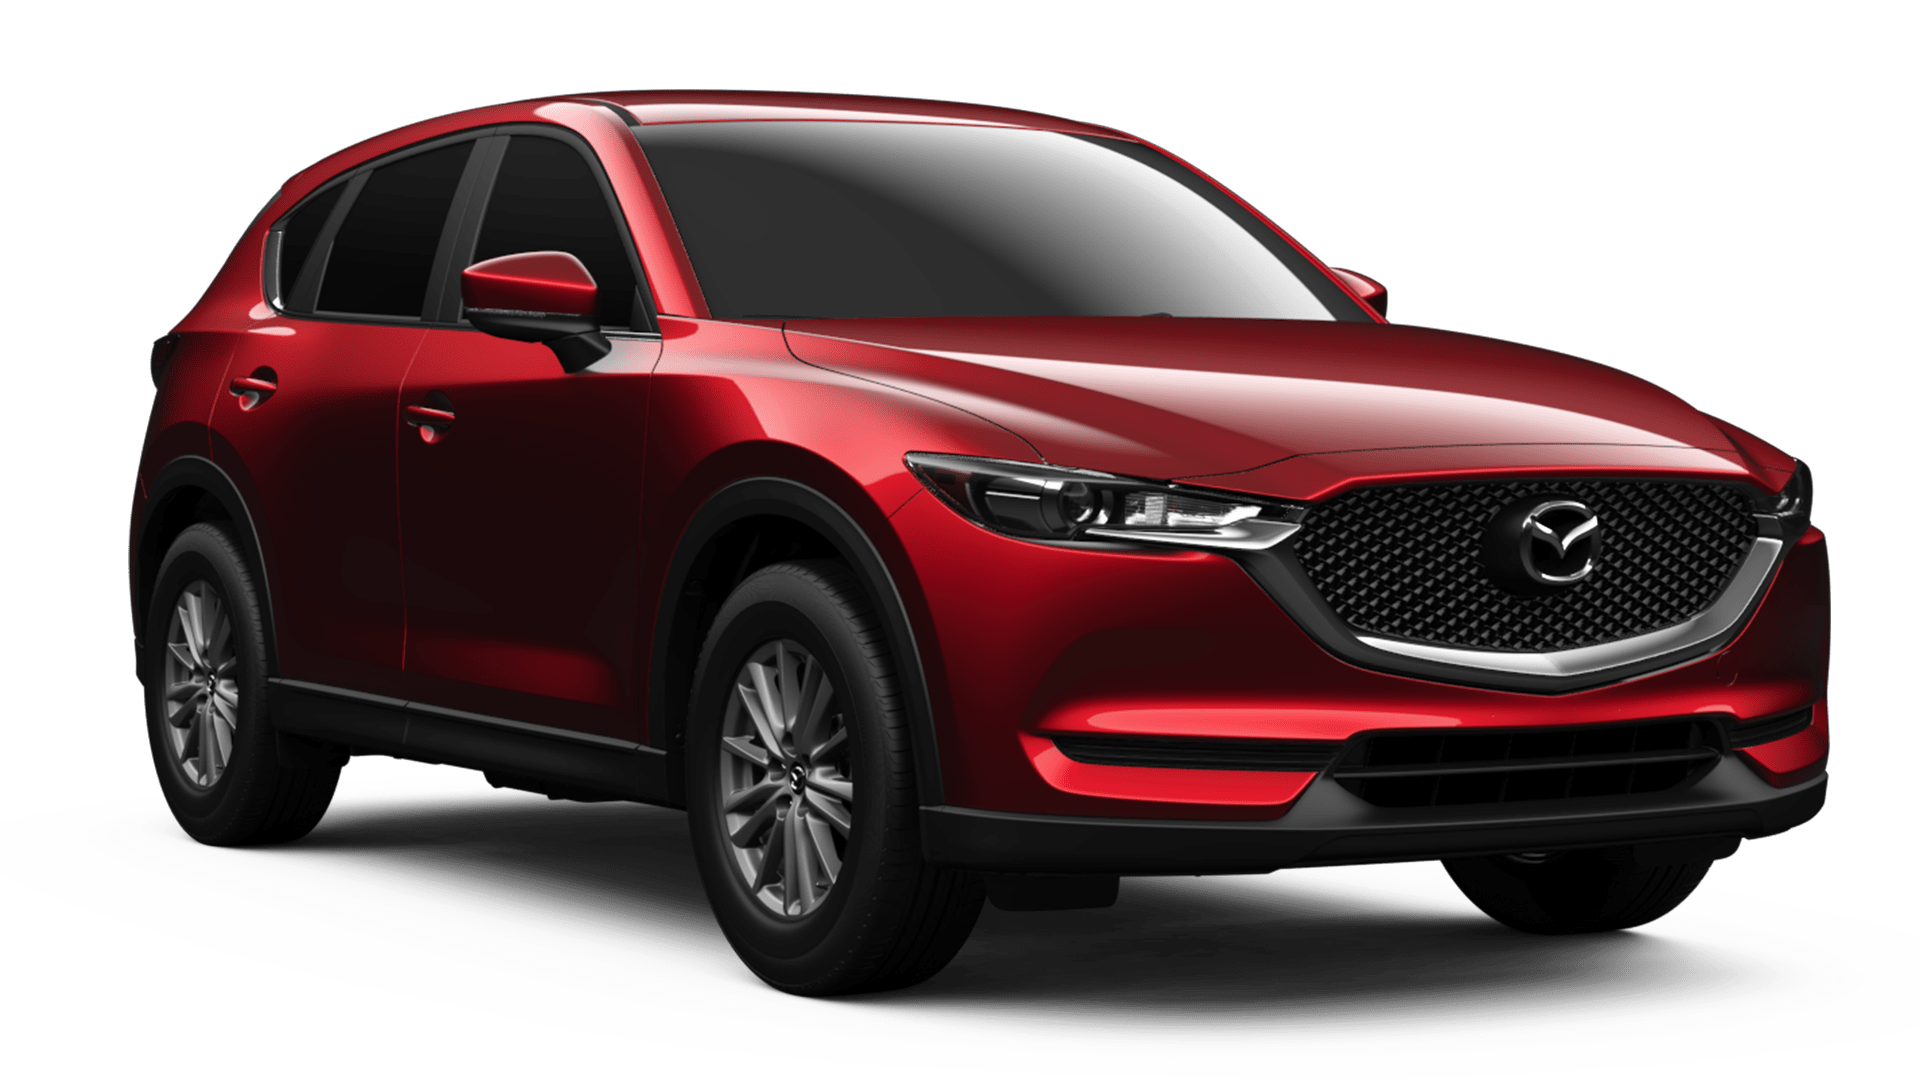 Hd Wallpapers Of New Audi Cars 2017 Cx 5 5 Seat Suv Mazda Canada